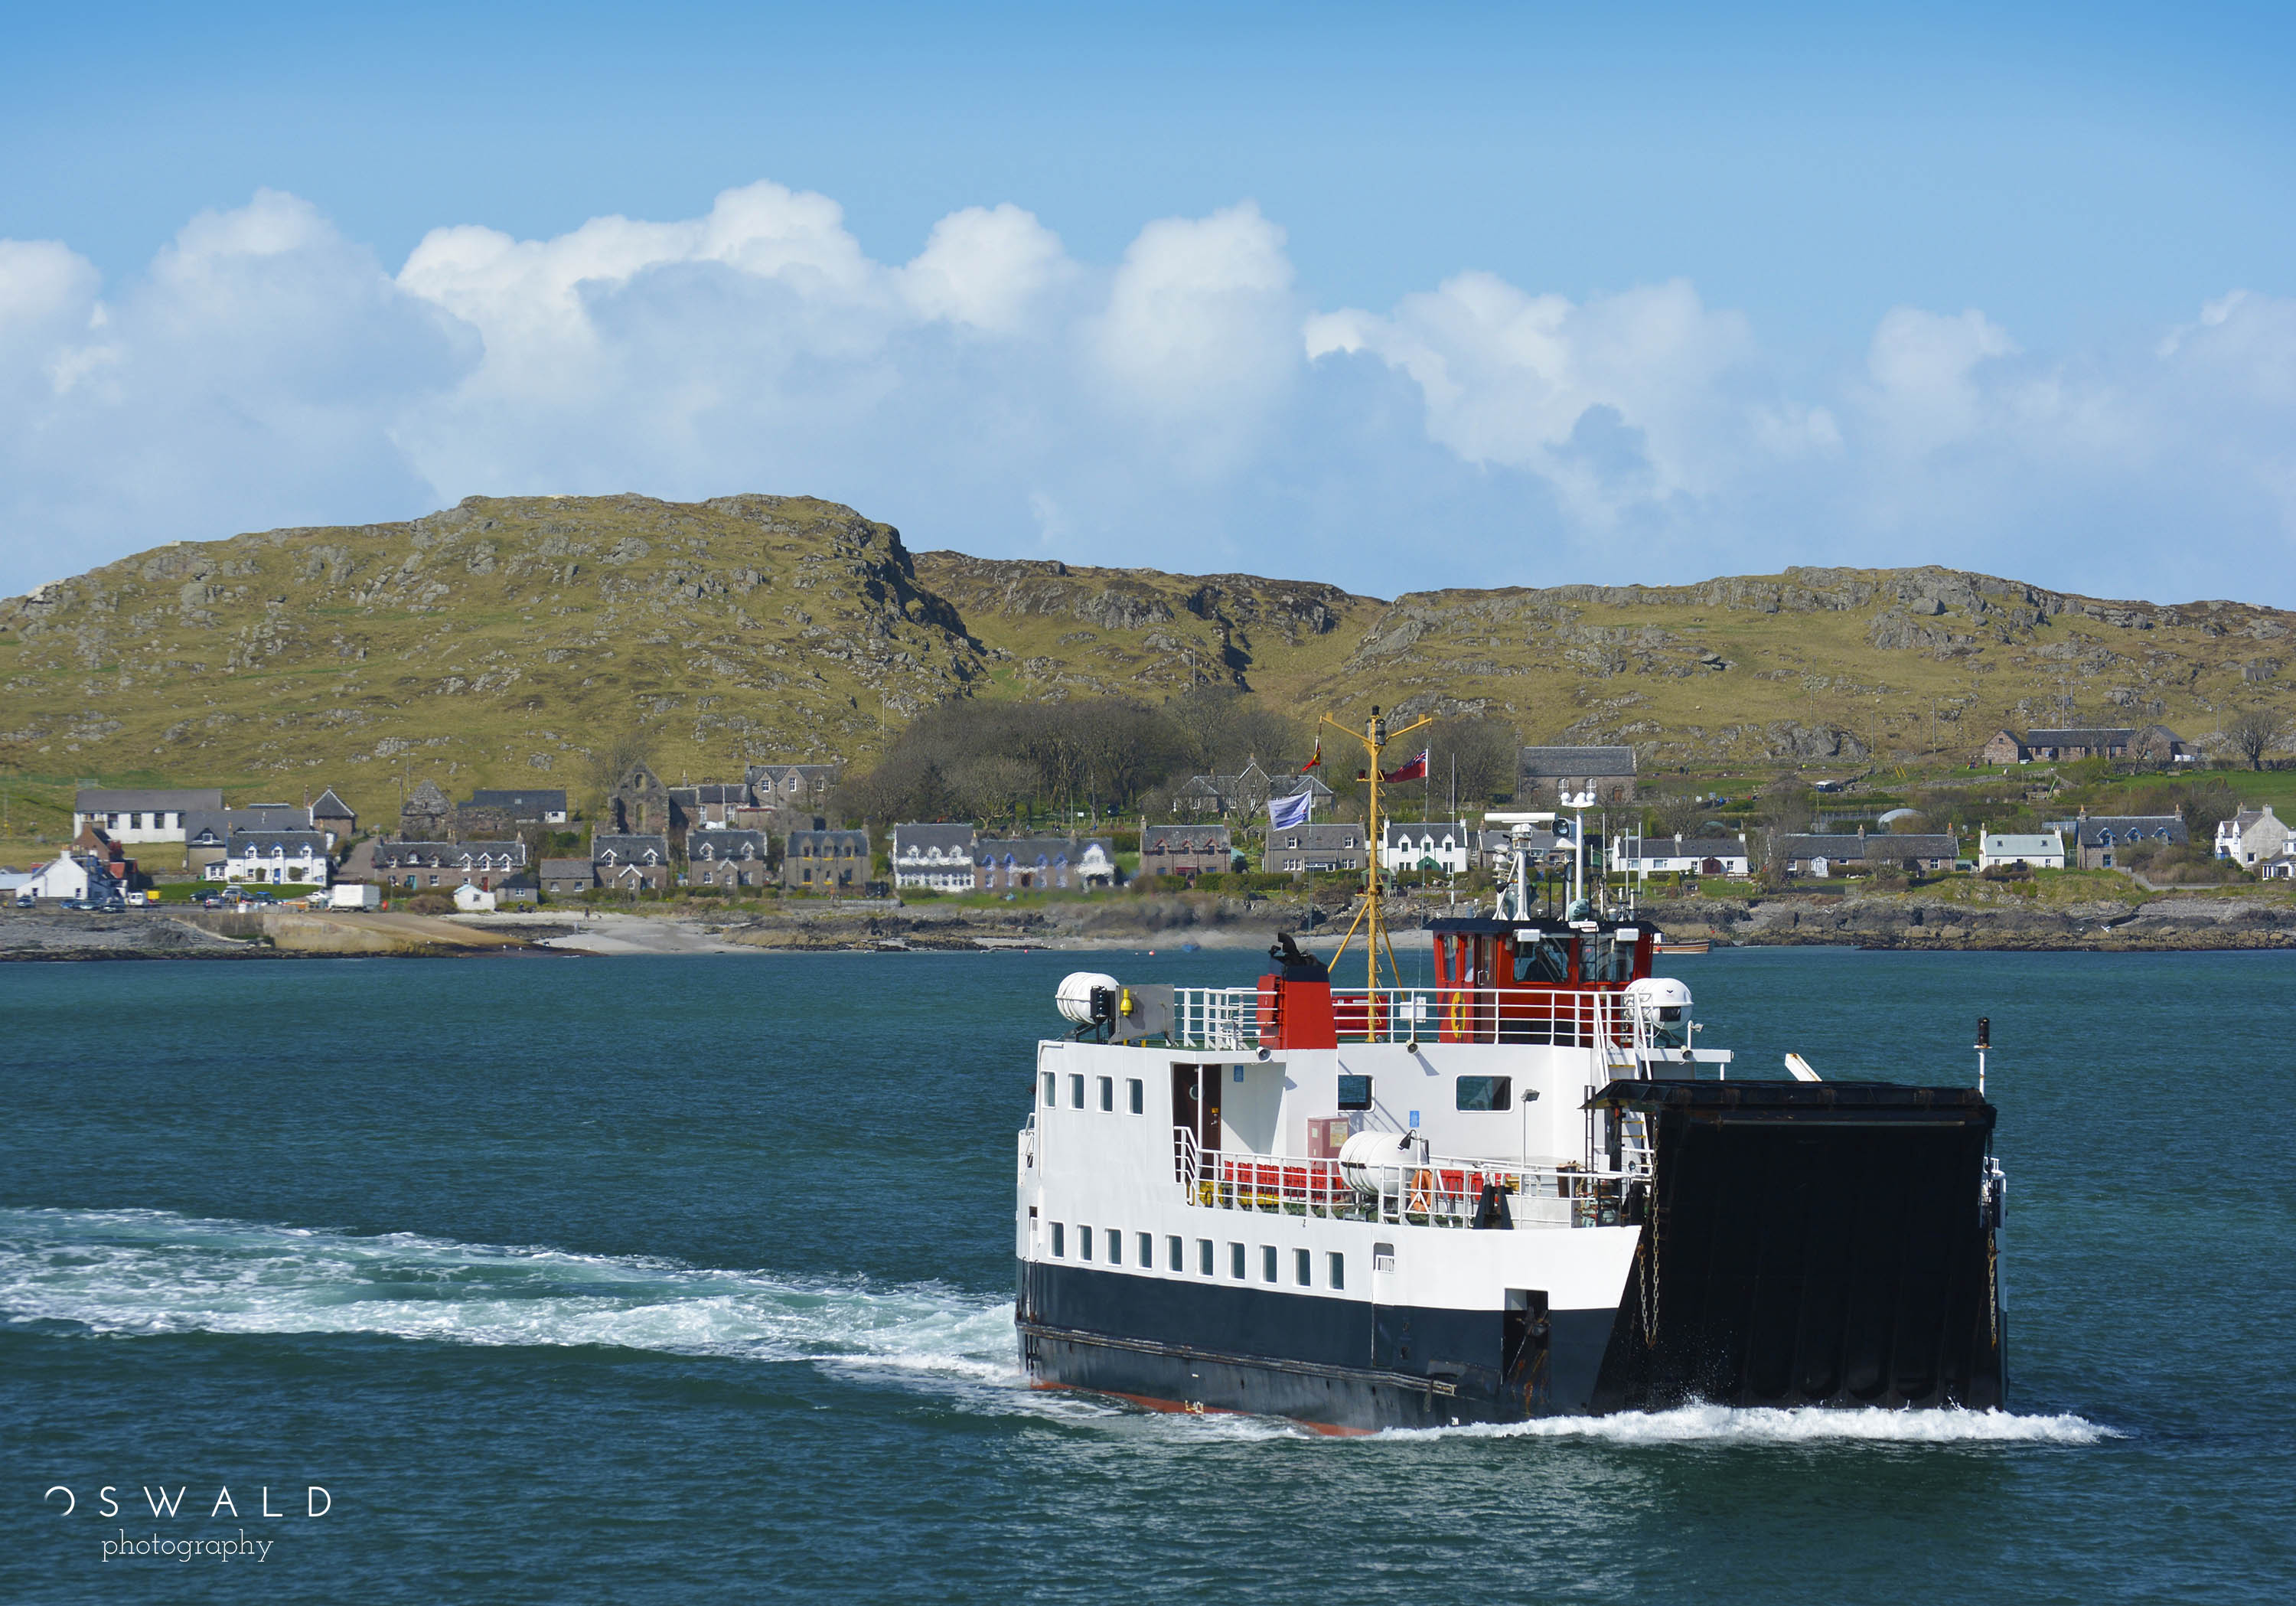 A CalMac ferry boat returns from the Isle of Iona to the Isle of Mull in Scotland over gorgeous blue waters.